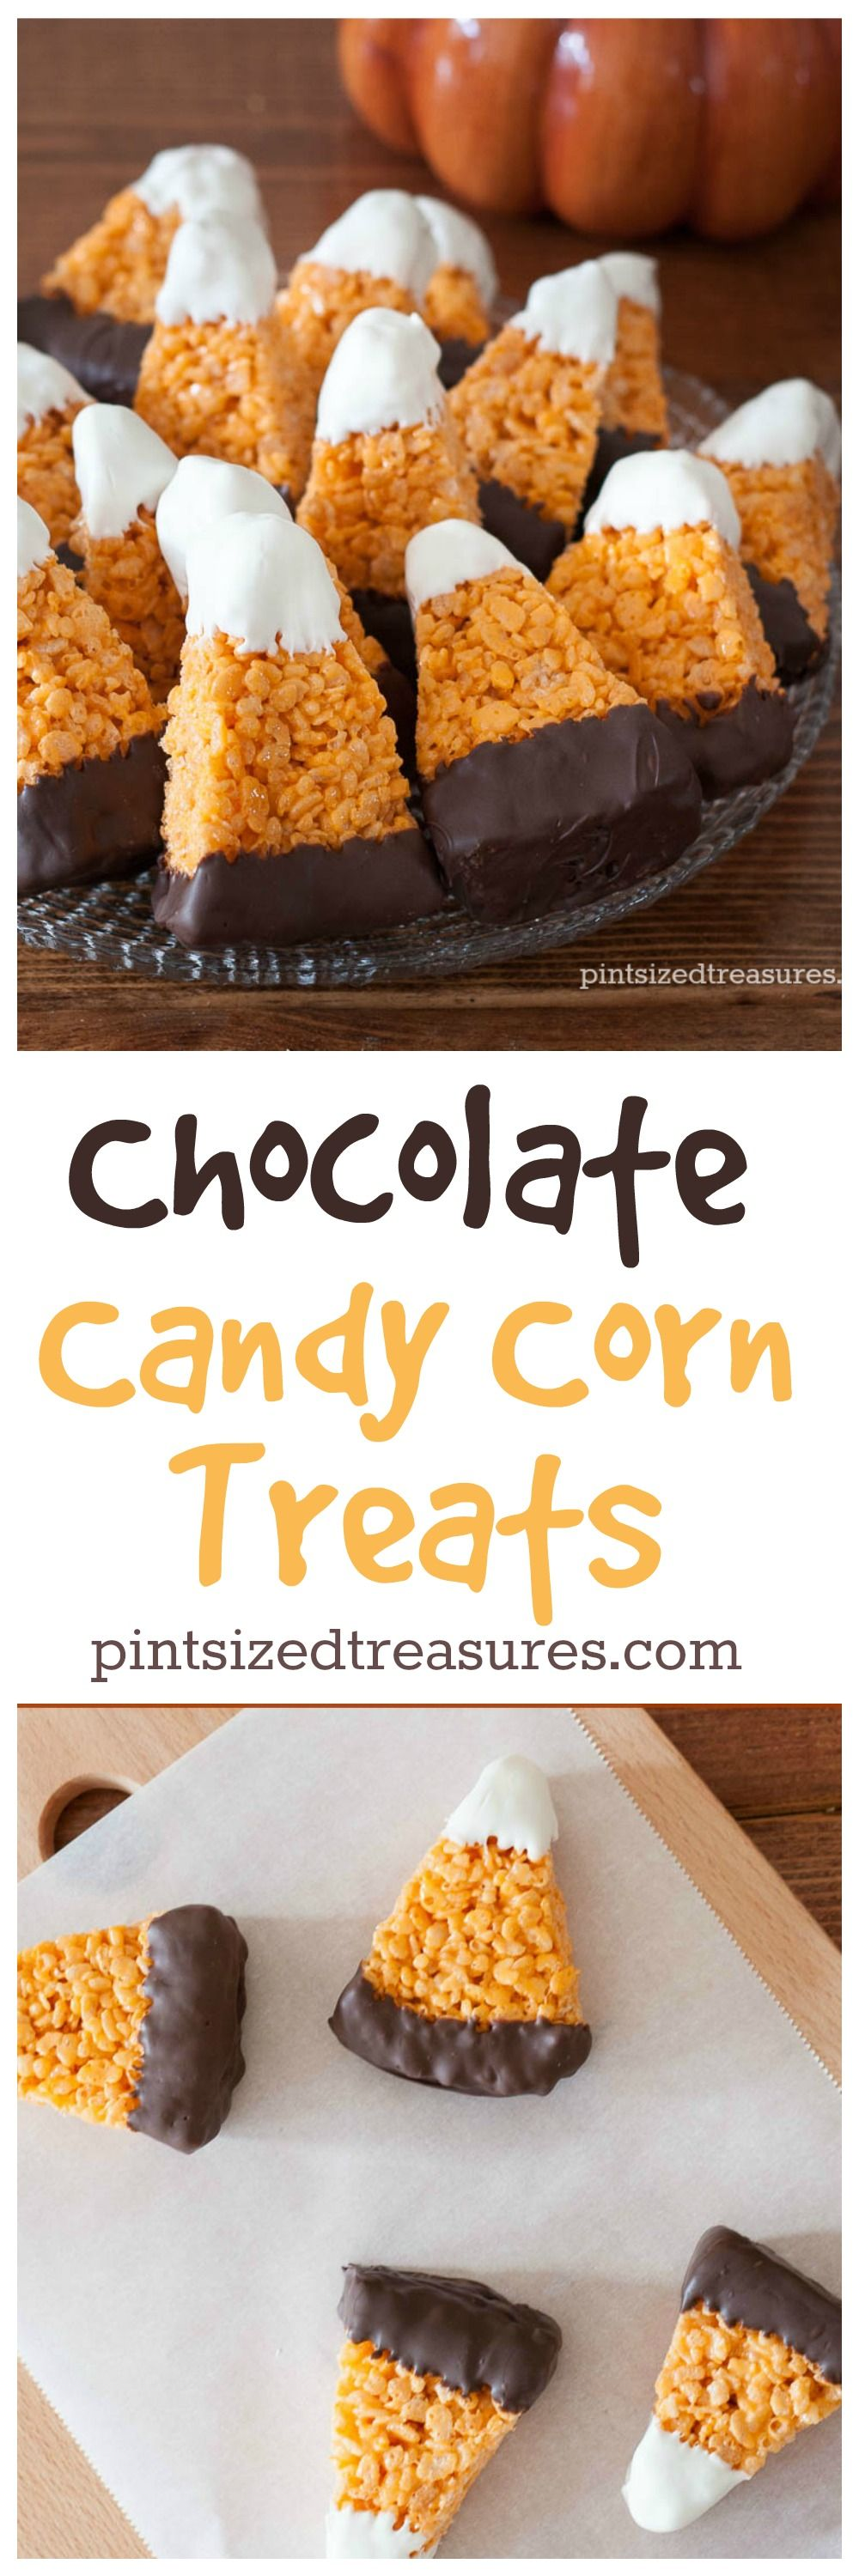 Chocolate Candy Corn Rice Krispie Treats · Pint-sized Treasures